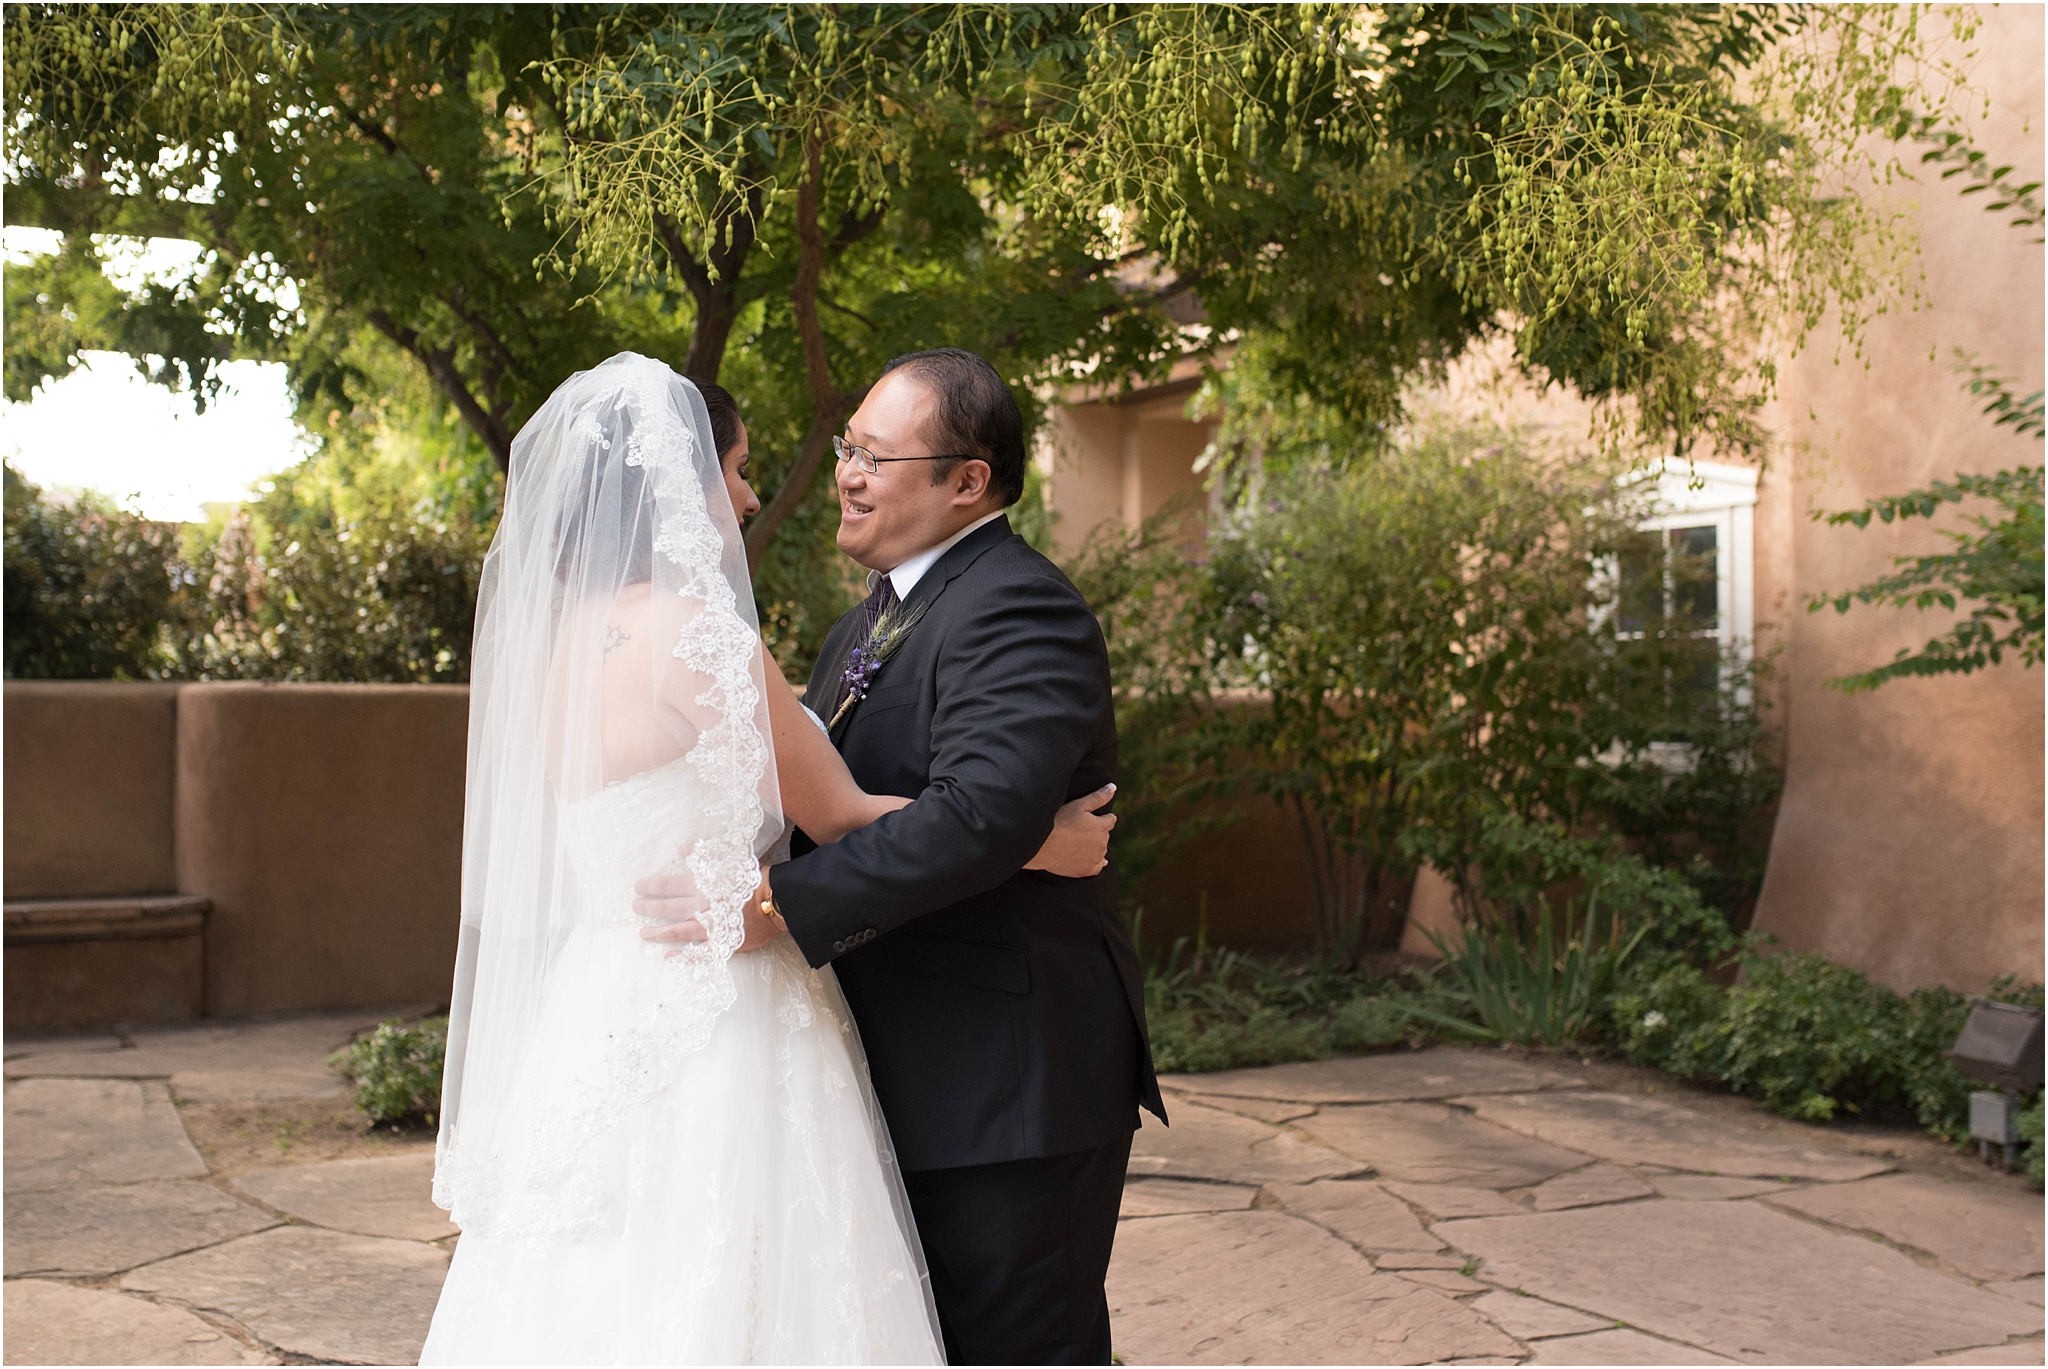 kayla kitts photography - new mexico wedding photographer - albuquerque botanic gardens - hotel albuquerque_0010.jpg